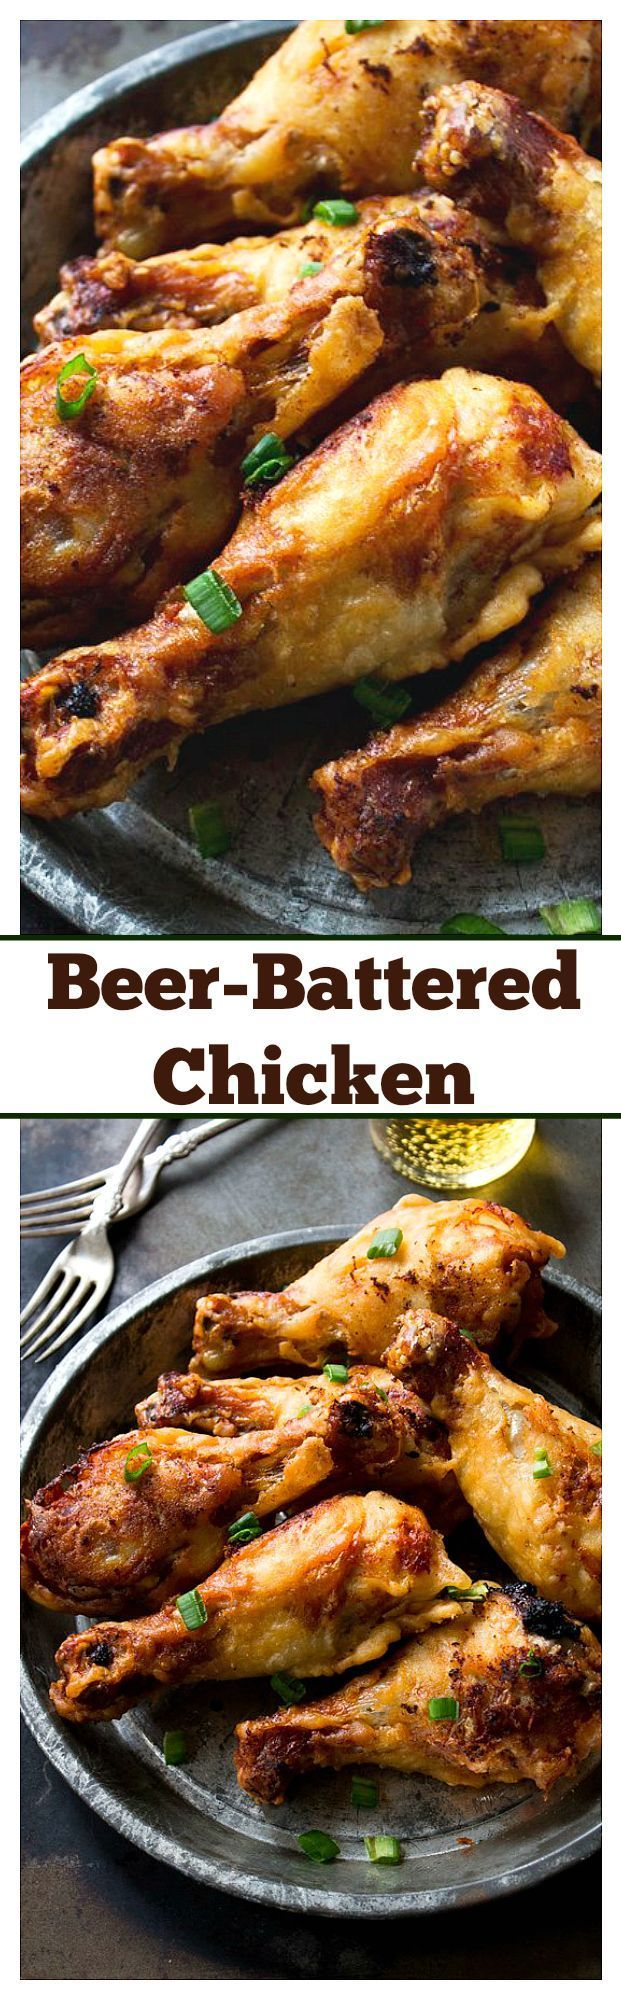 Beer-Battered Yogurt Chicken - Crispy and super flavorful chicken soaked in a yogurt-mixture and coated with a crisp beer-batter.